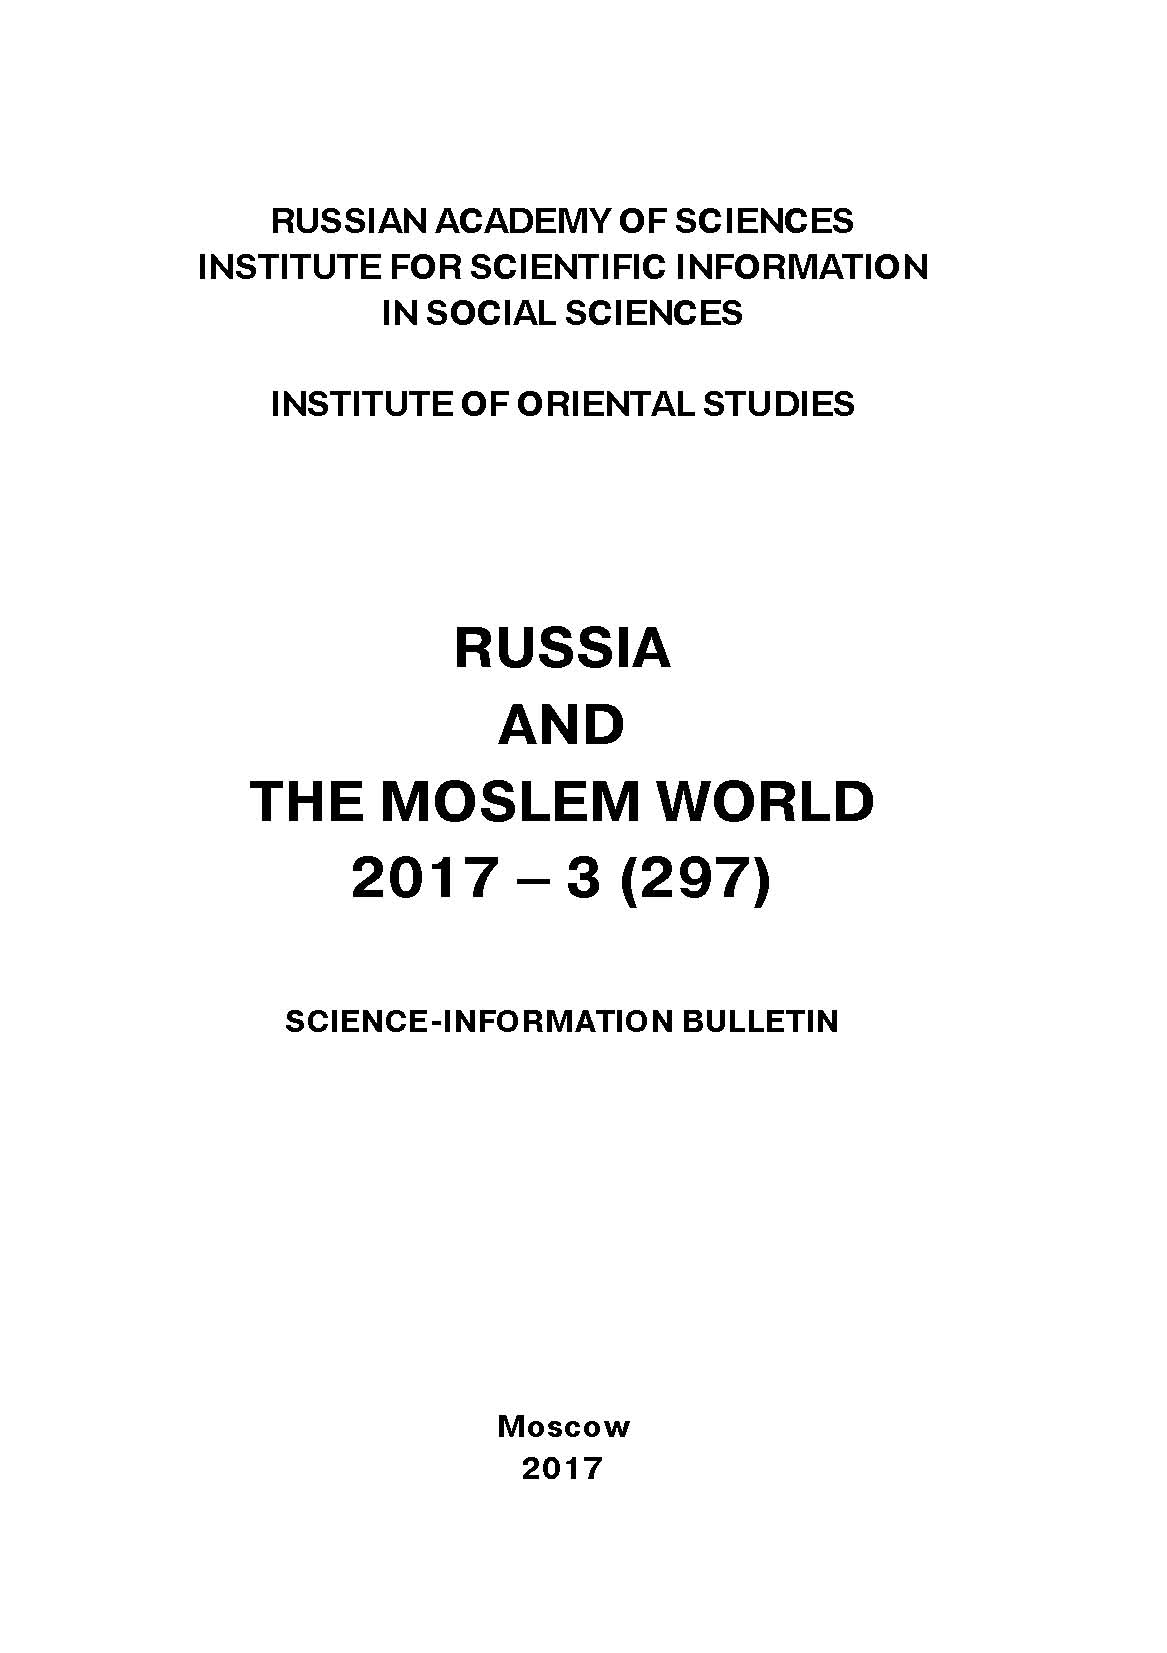 Russia and the Moslem World № 03 / 2017